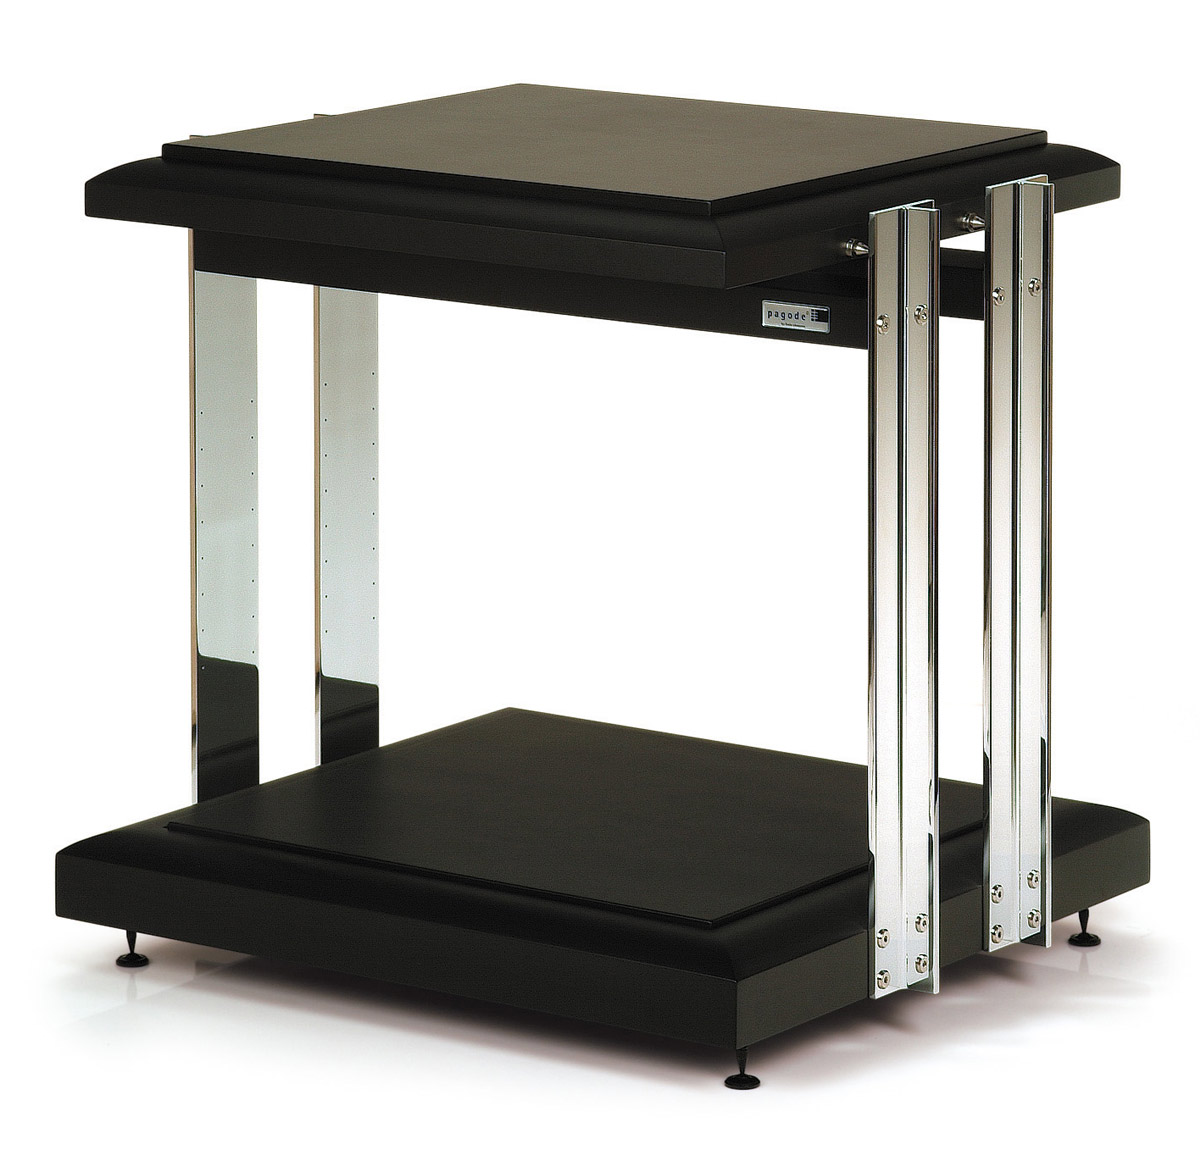 Hifi rack high end  Finite Elemente Pagode Master Reference MR01- 1- High End Rack bei ...